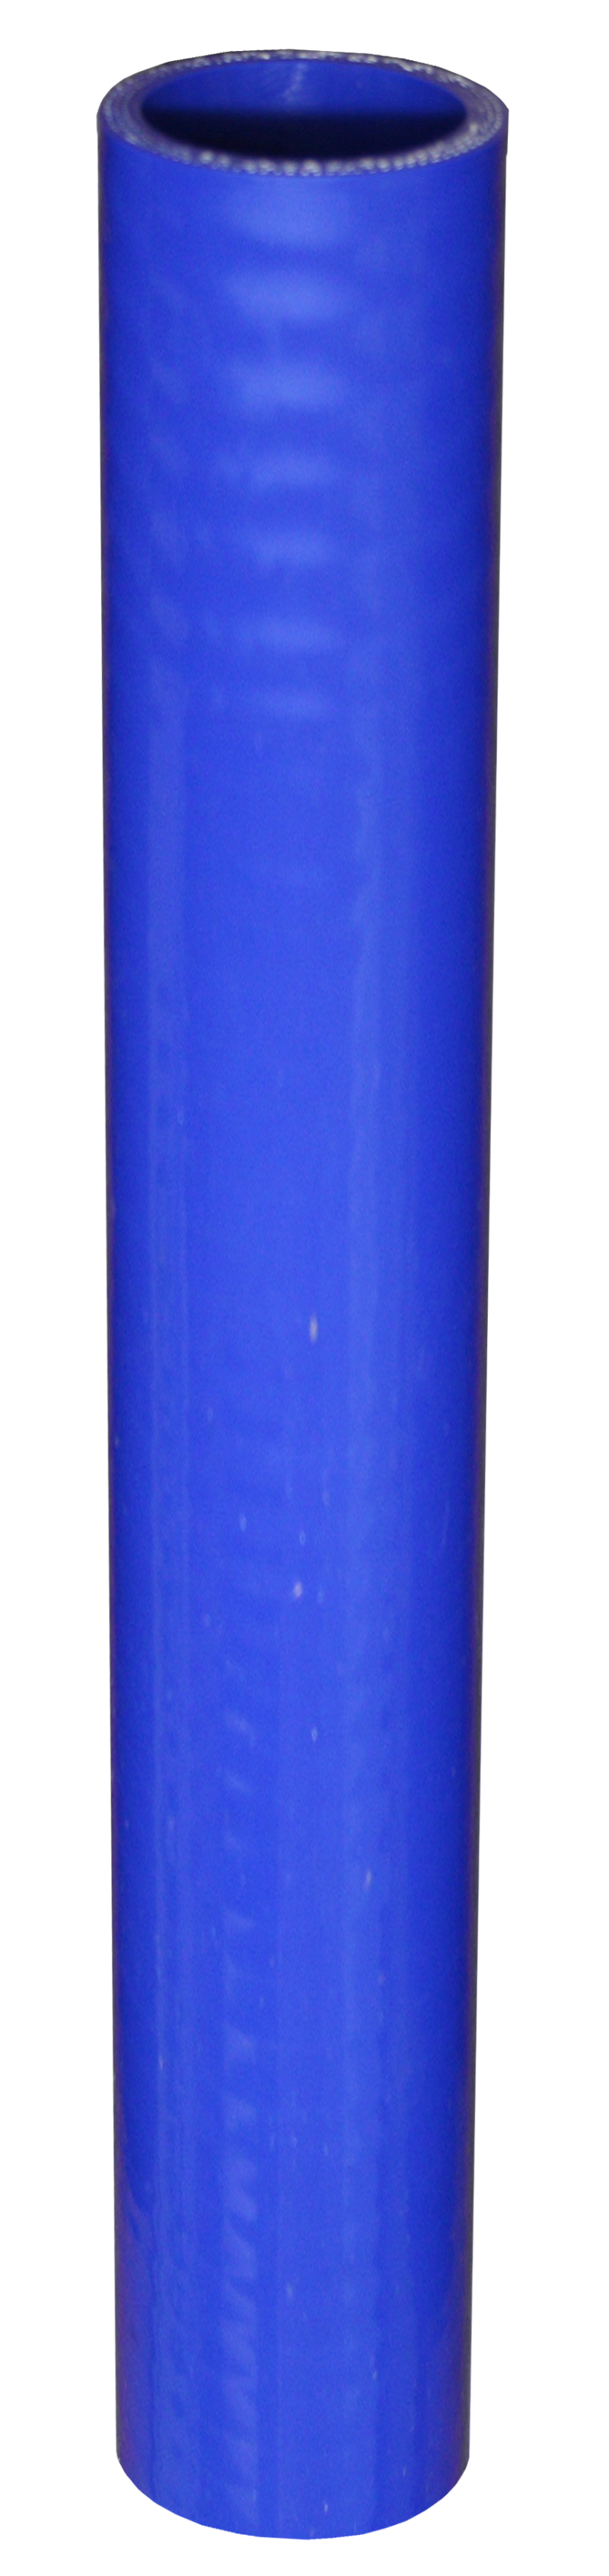 Silicon  Blue  Radiator   Hose  12 Inch Length  1.50 I.D.